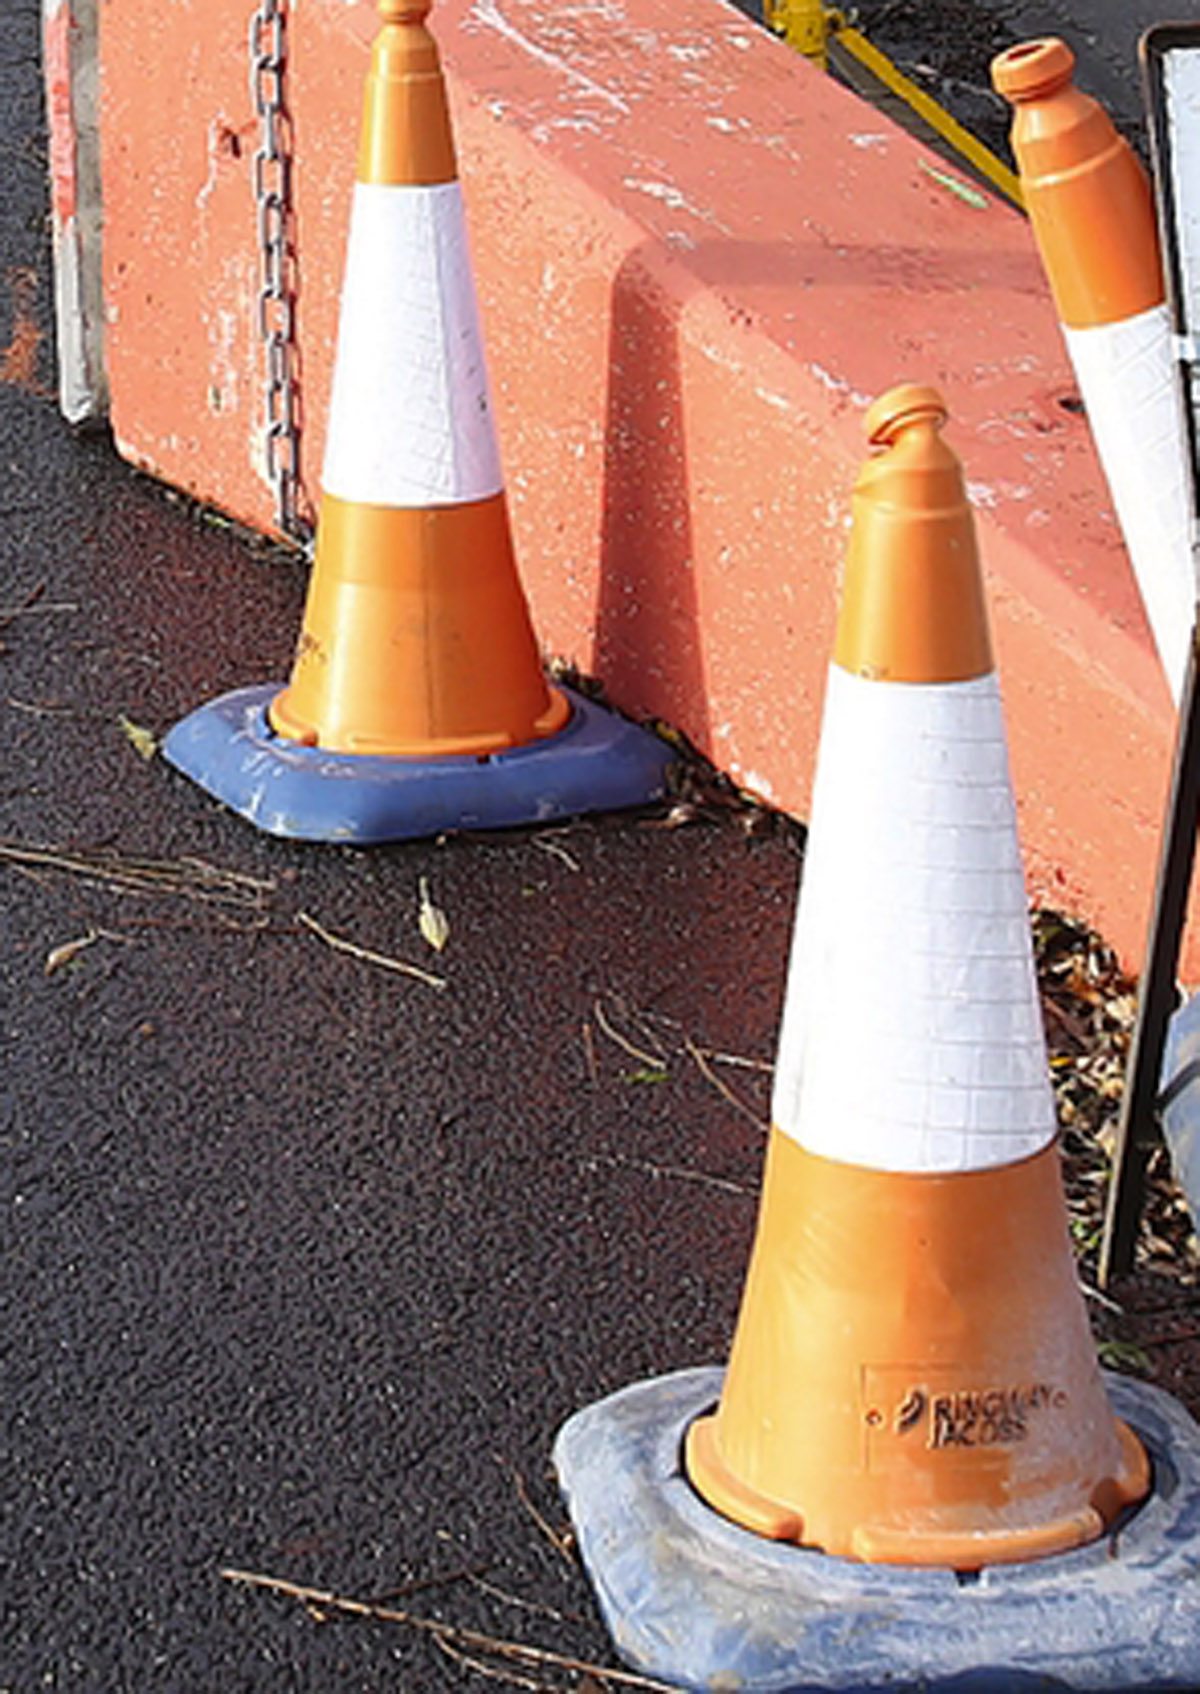 Road works in Vicarage Road until end of the month